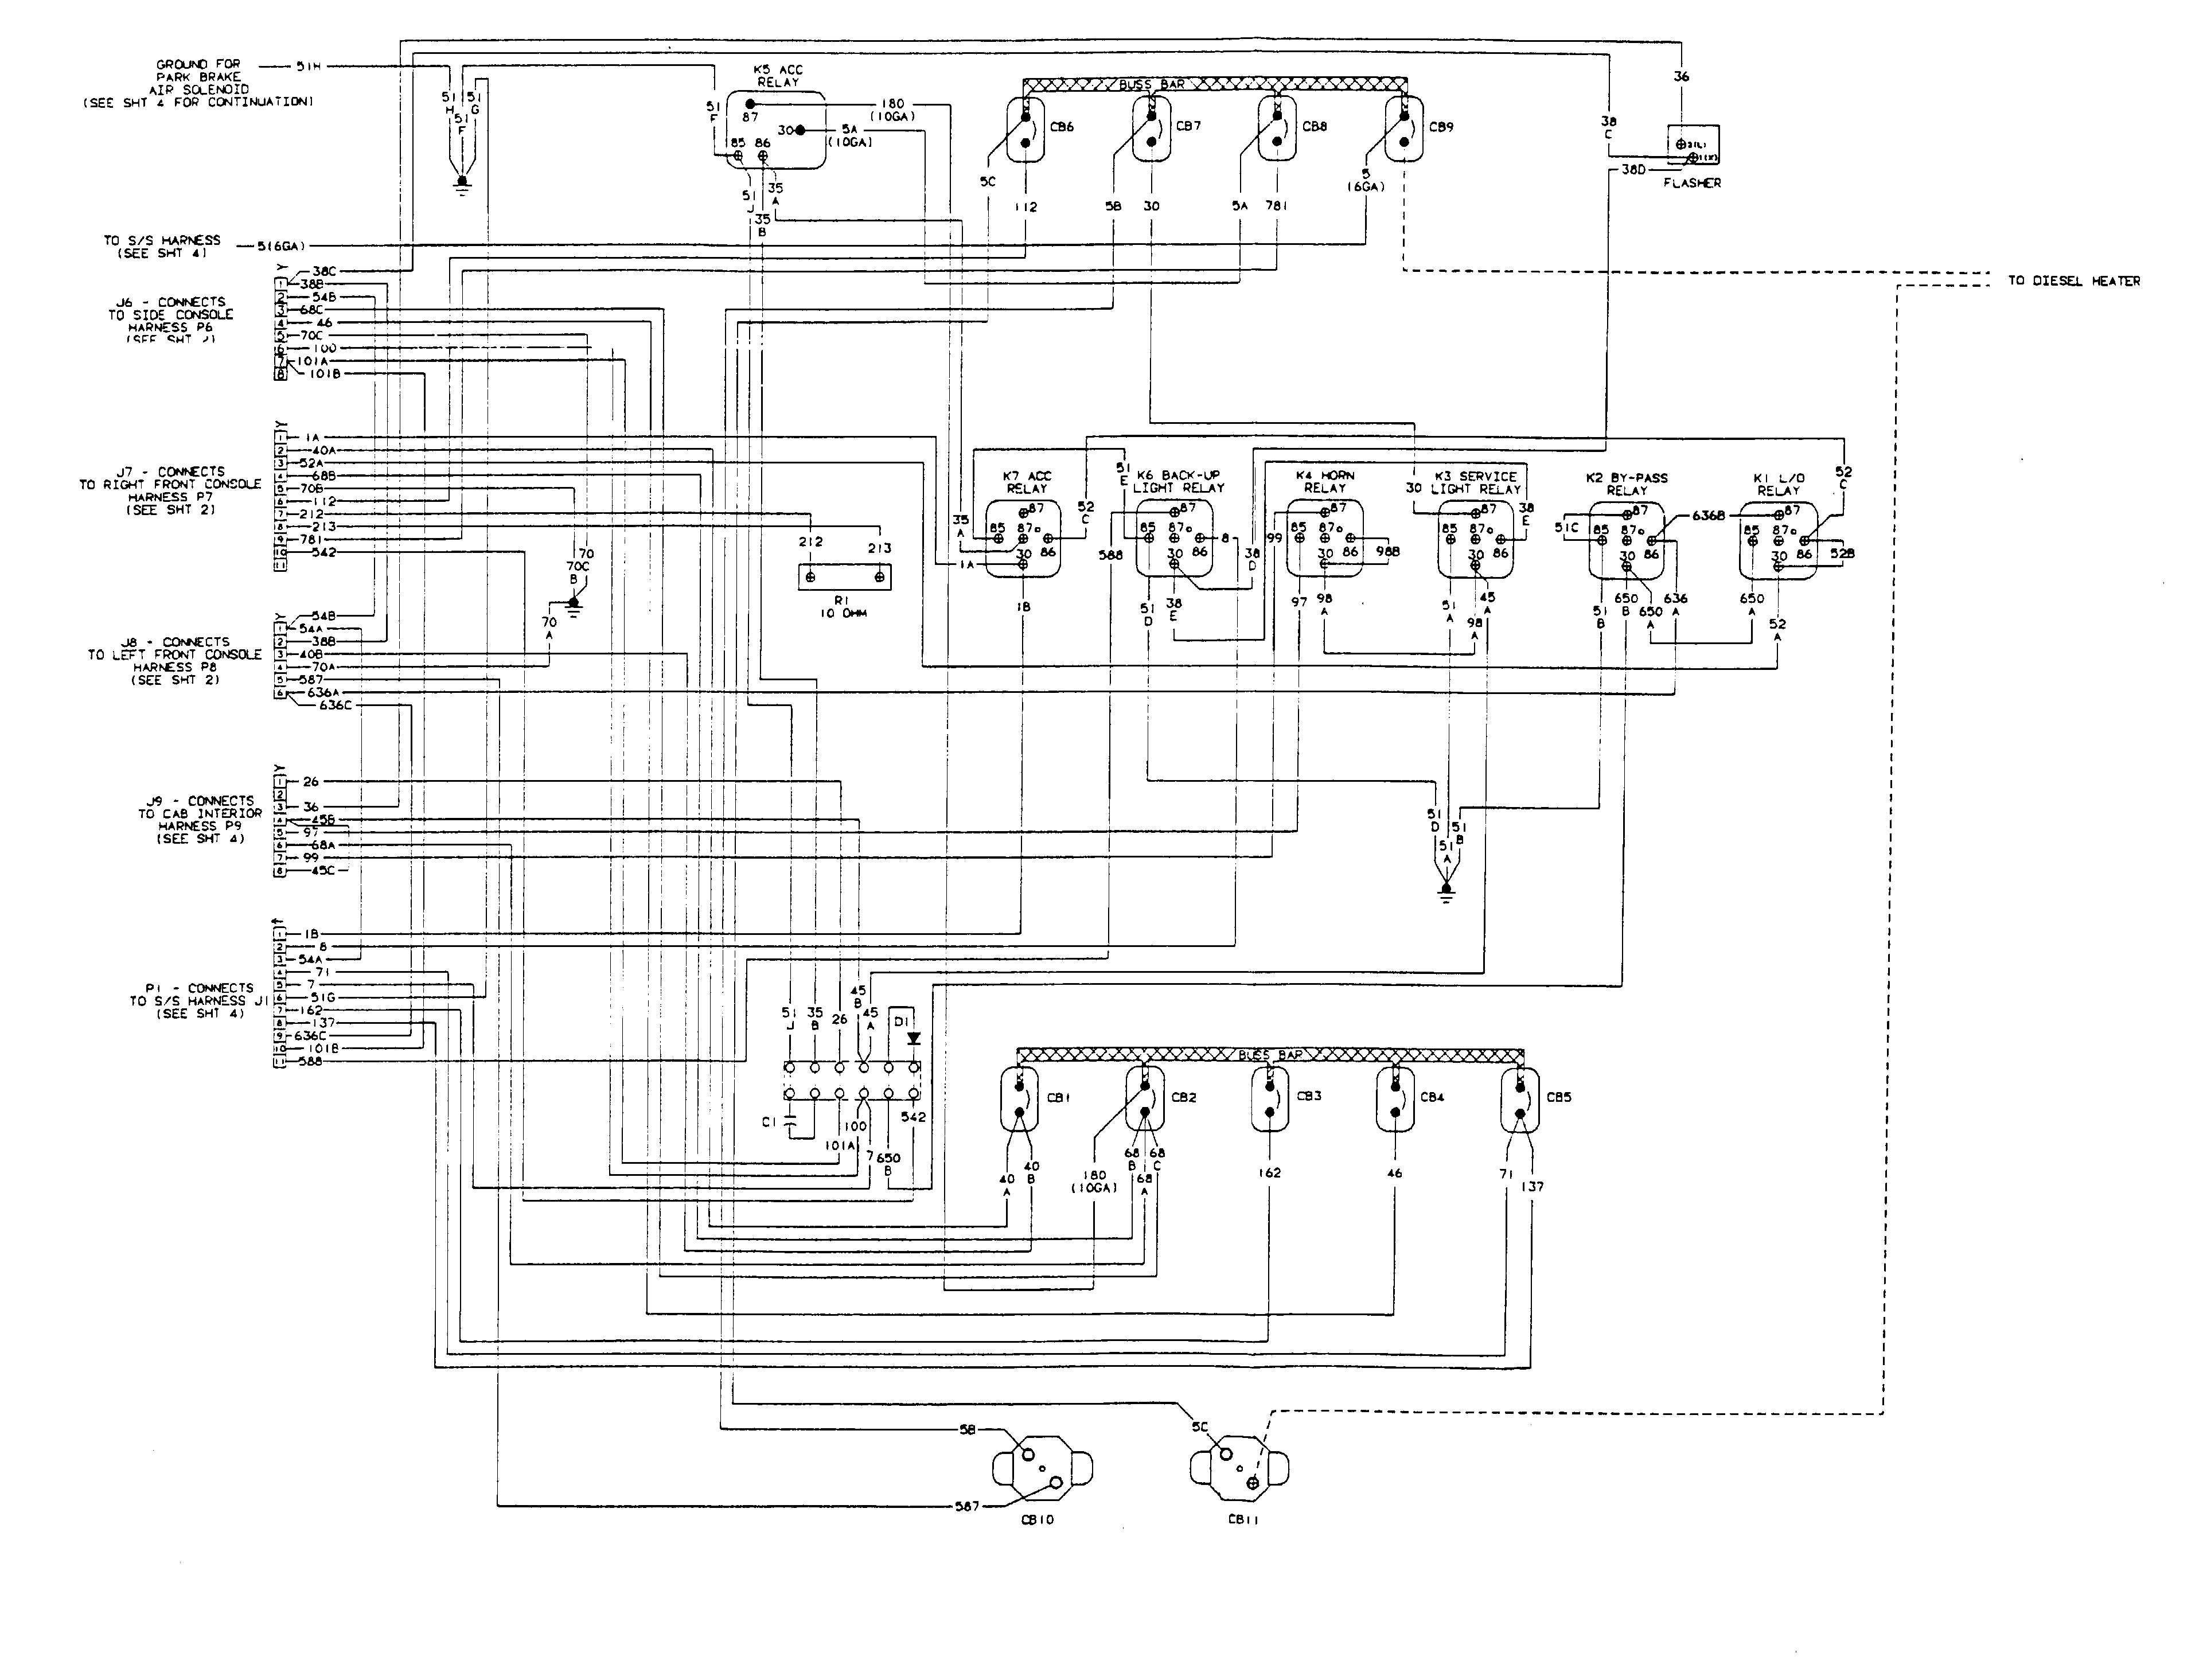 Harbor Freight Tools Pompano Beach – Simple Wiring Diagram - Harbor Freight Security Camera Wiring Diagram